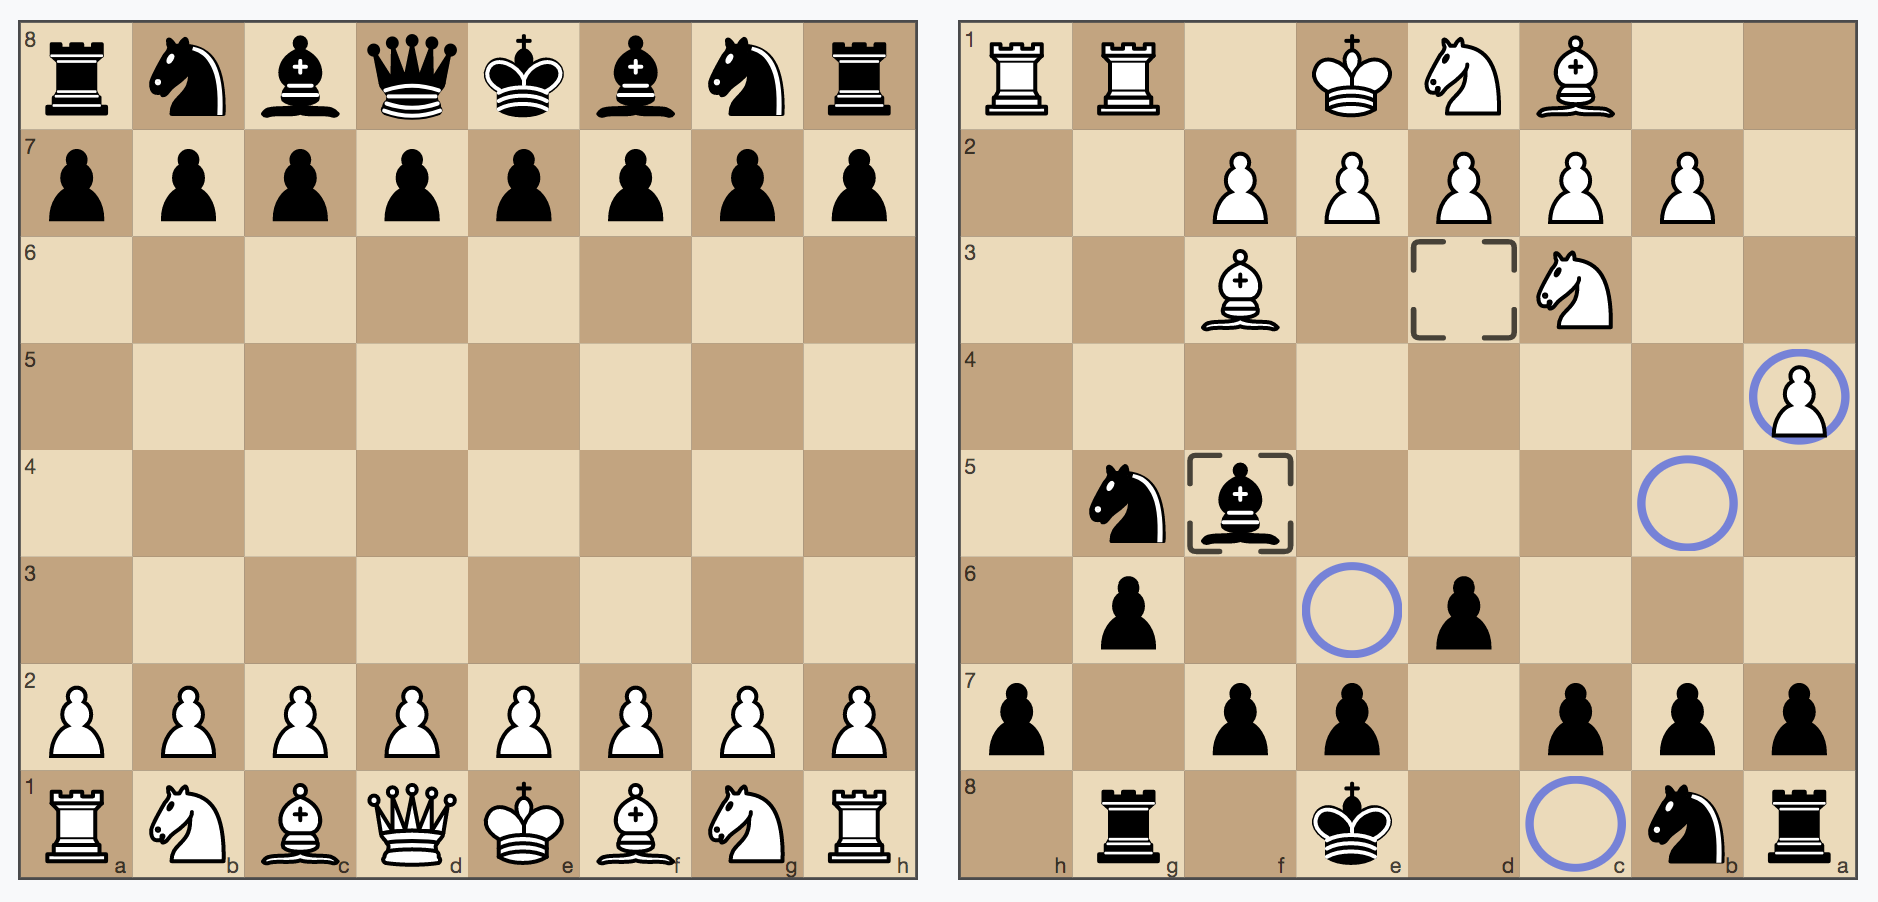 Example chessboards